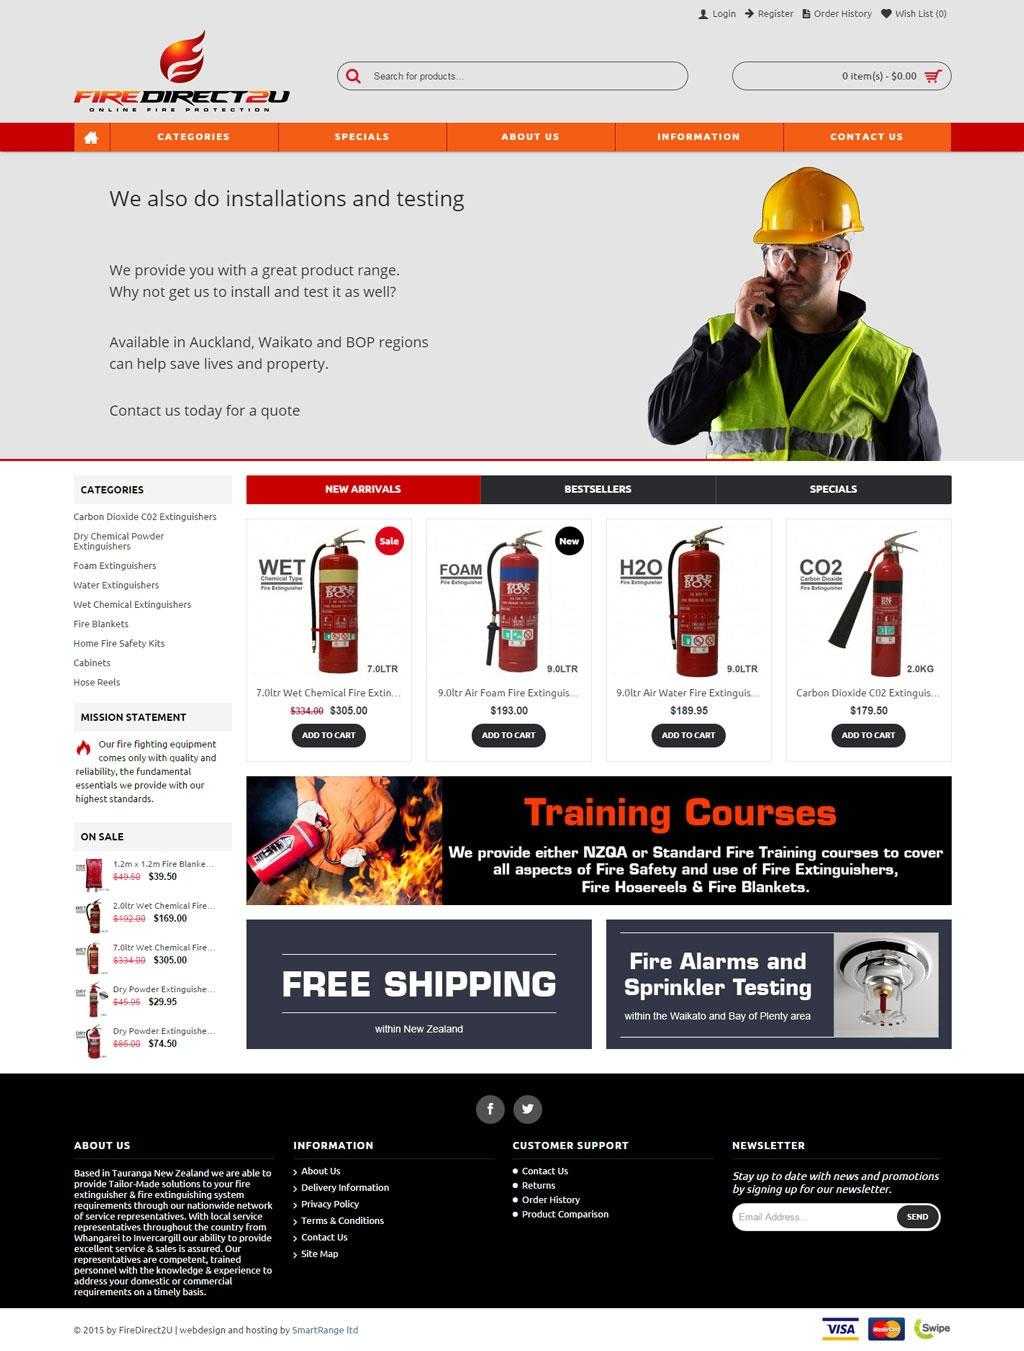 Firequip2U - Online Fire Protection